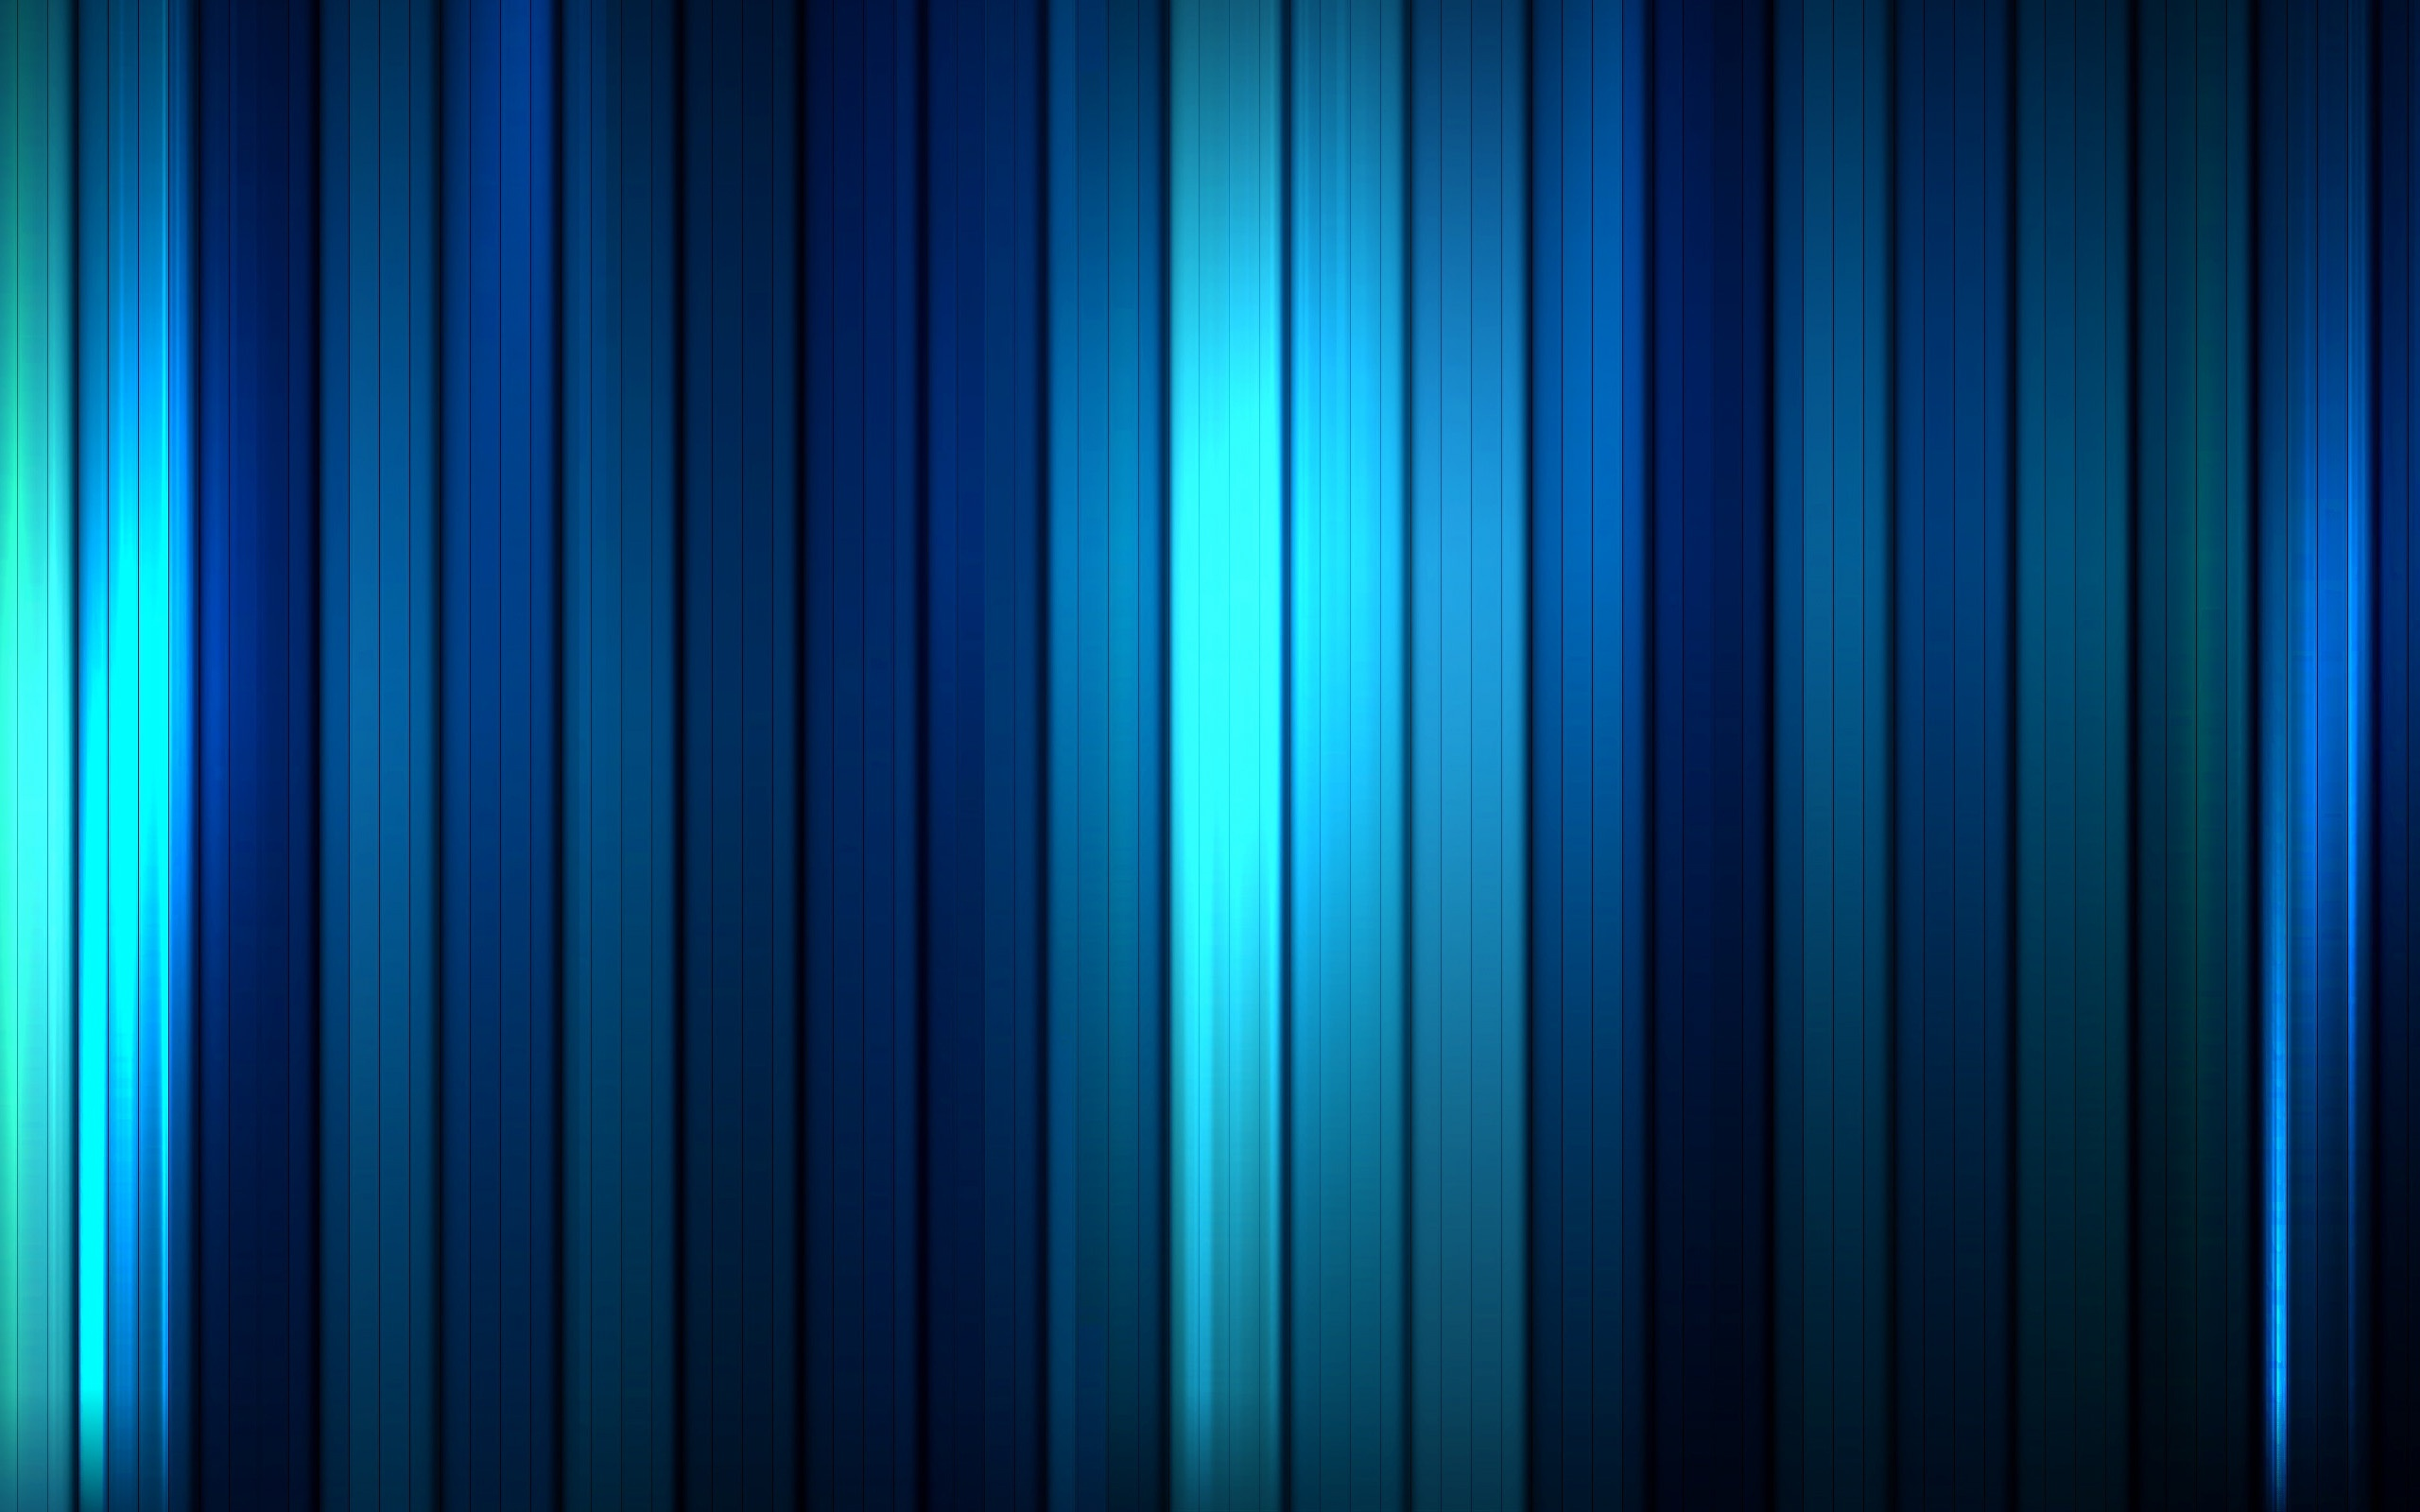 2560x1600 vertical blue stripes desktop pc and mac wallpaper